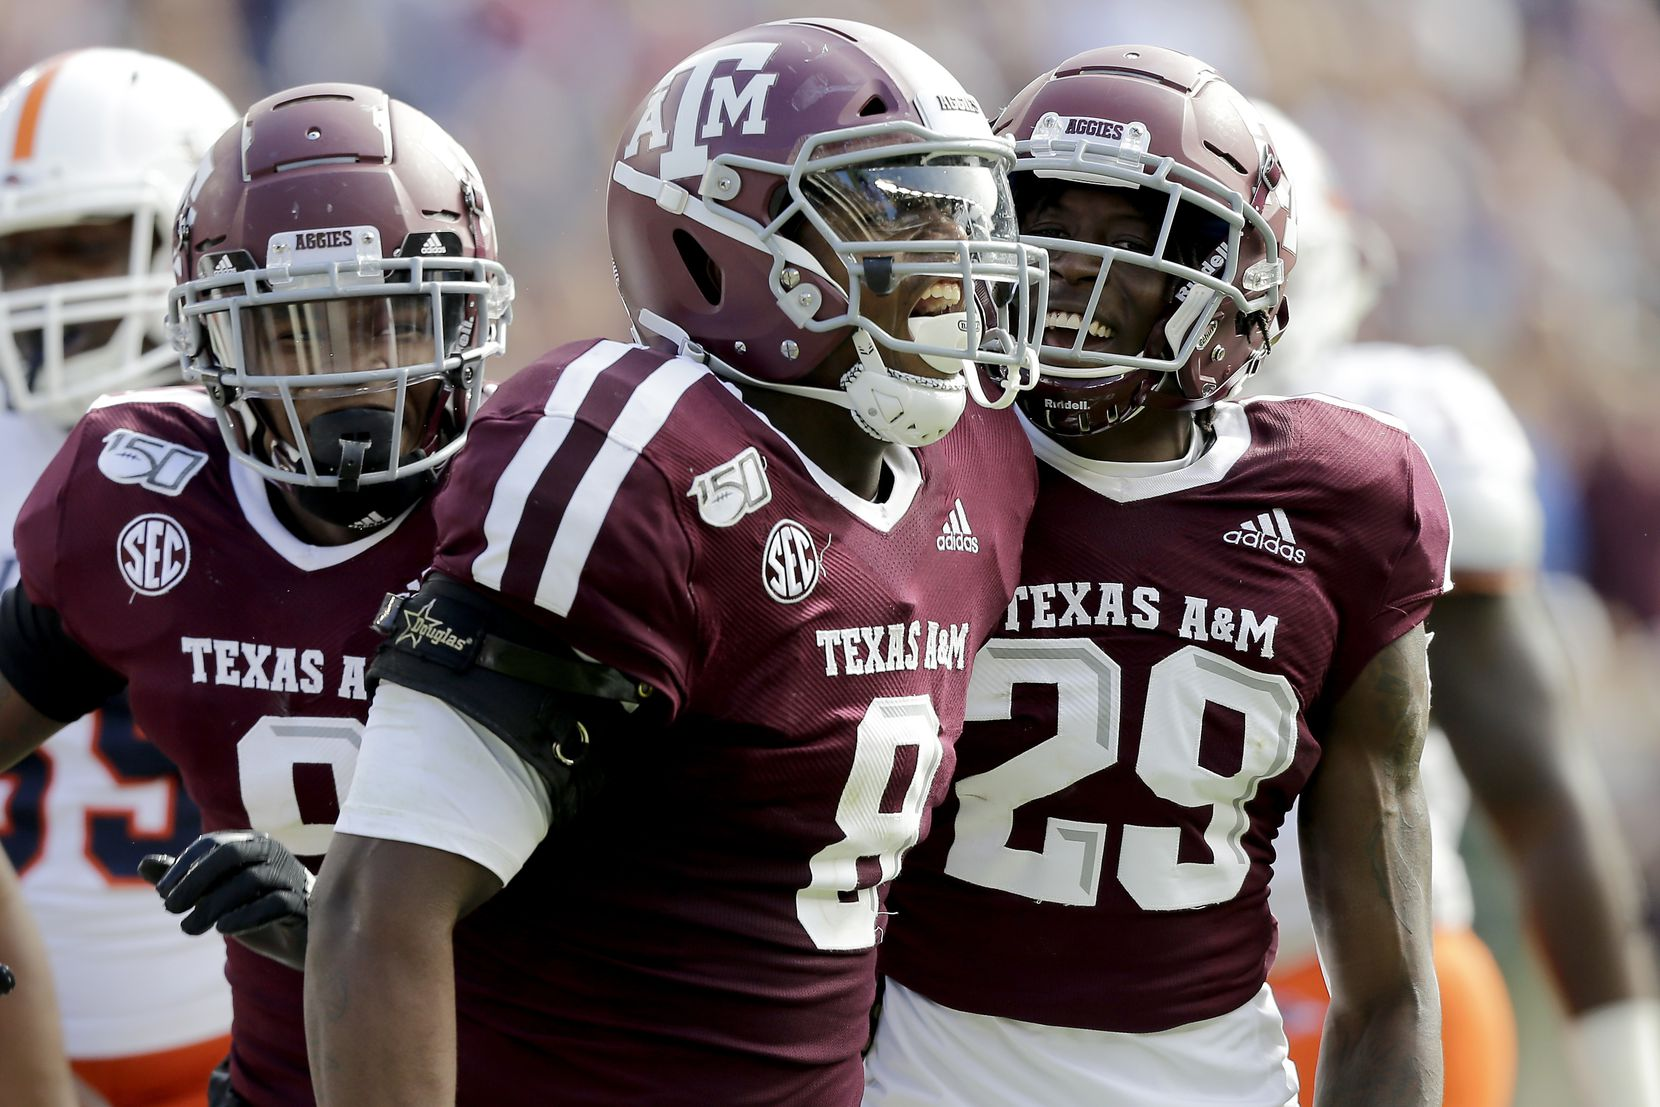 Texas A&M defensive lineman DeMarvin Leal (8) reacts after tackling UTSA quarterback Lowell Narcisse (10) for a short loss during the first quarter of an NCAA college football game, Saturday, Nov. 2, 2019, in College Station, Texas.